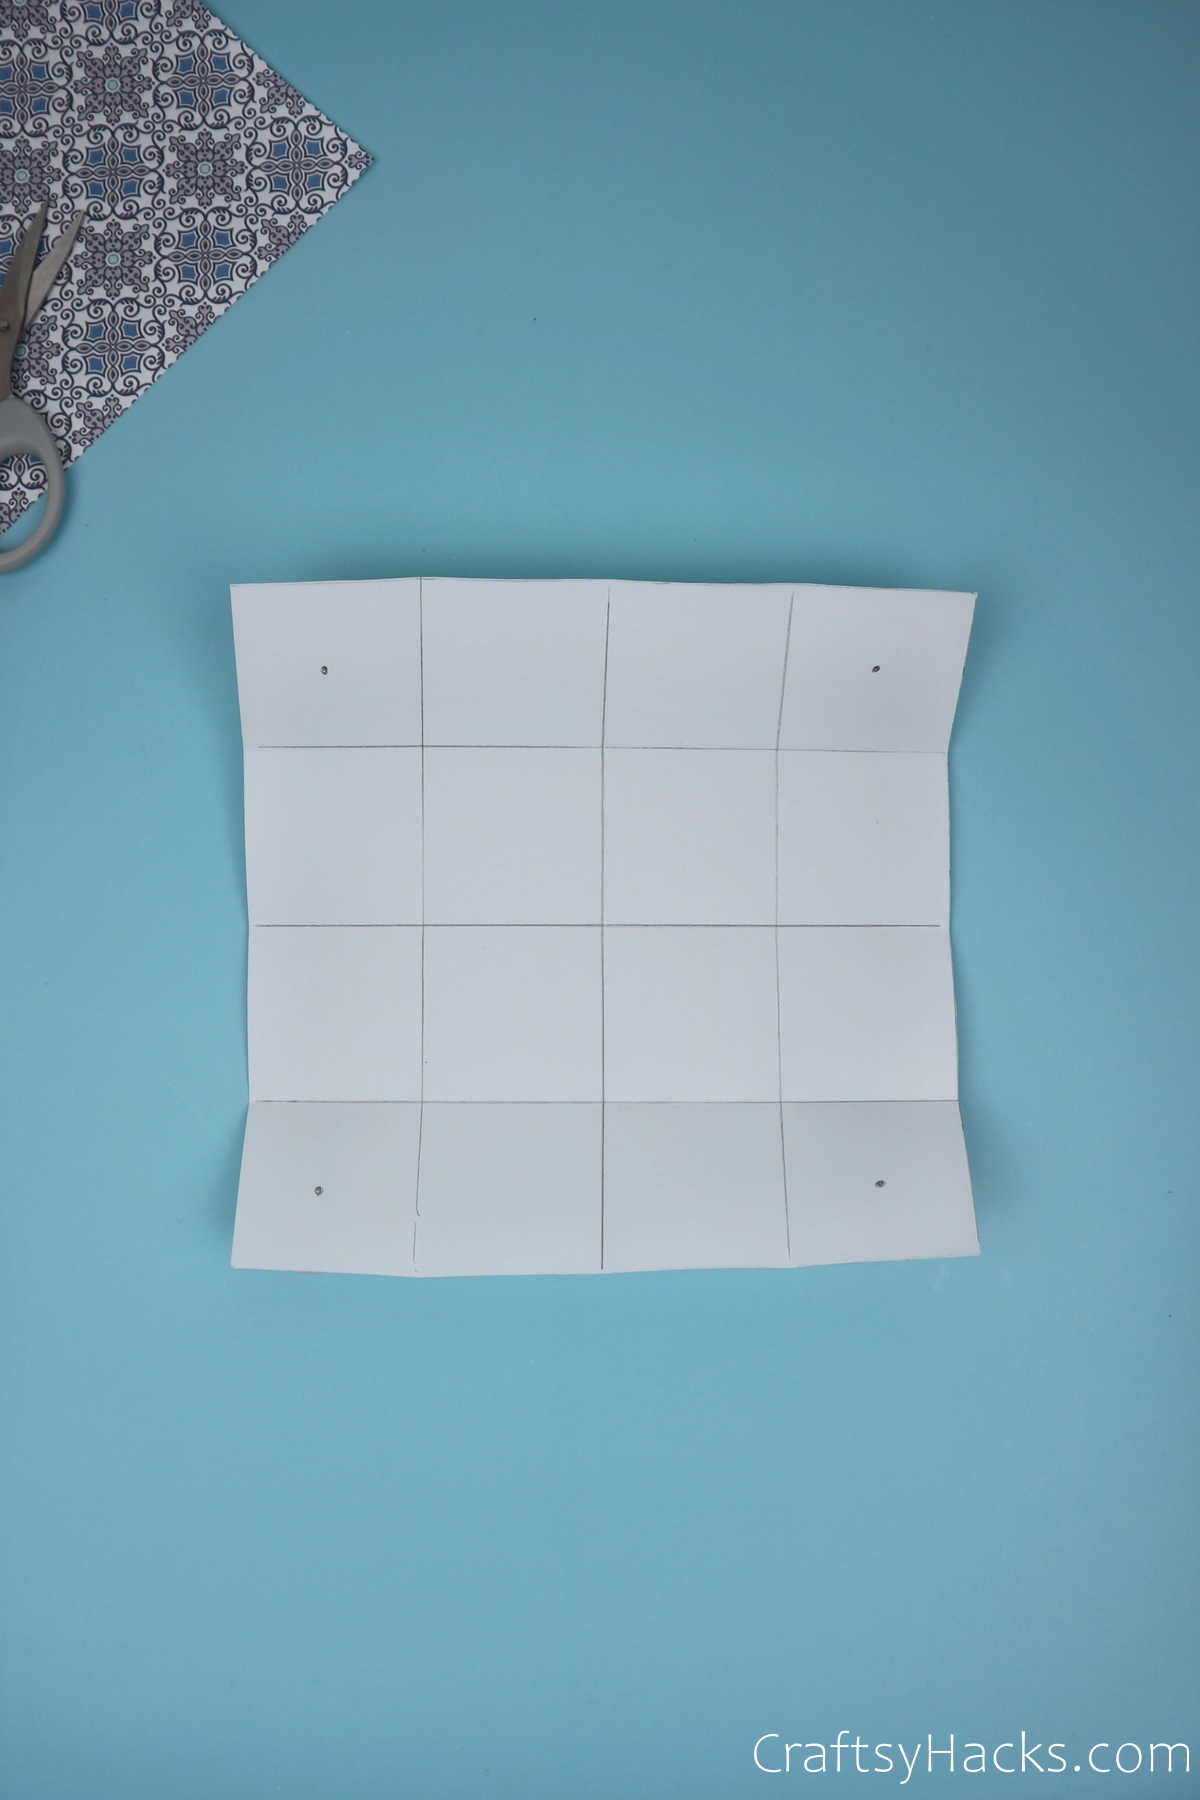 paper with 16 squares